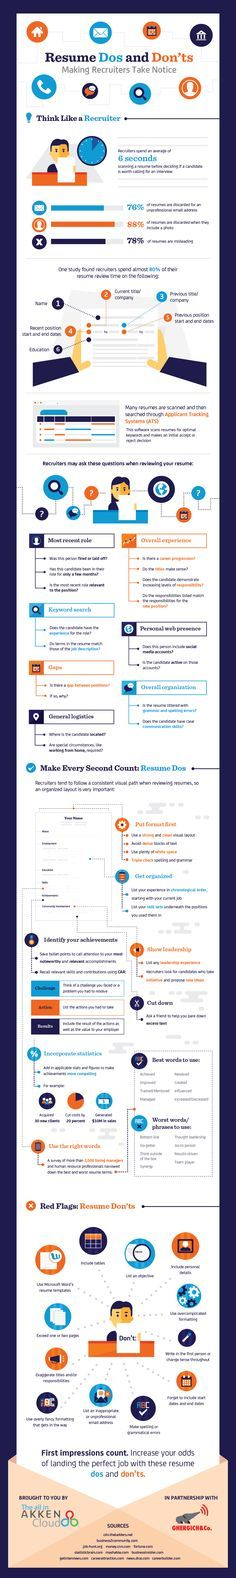 Resume Dos and Don'ts: Making Recruiters Take Notice (Infographic)|iBrandStudio